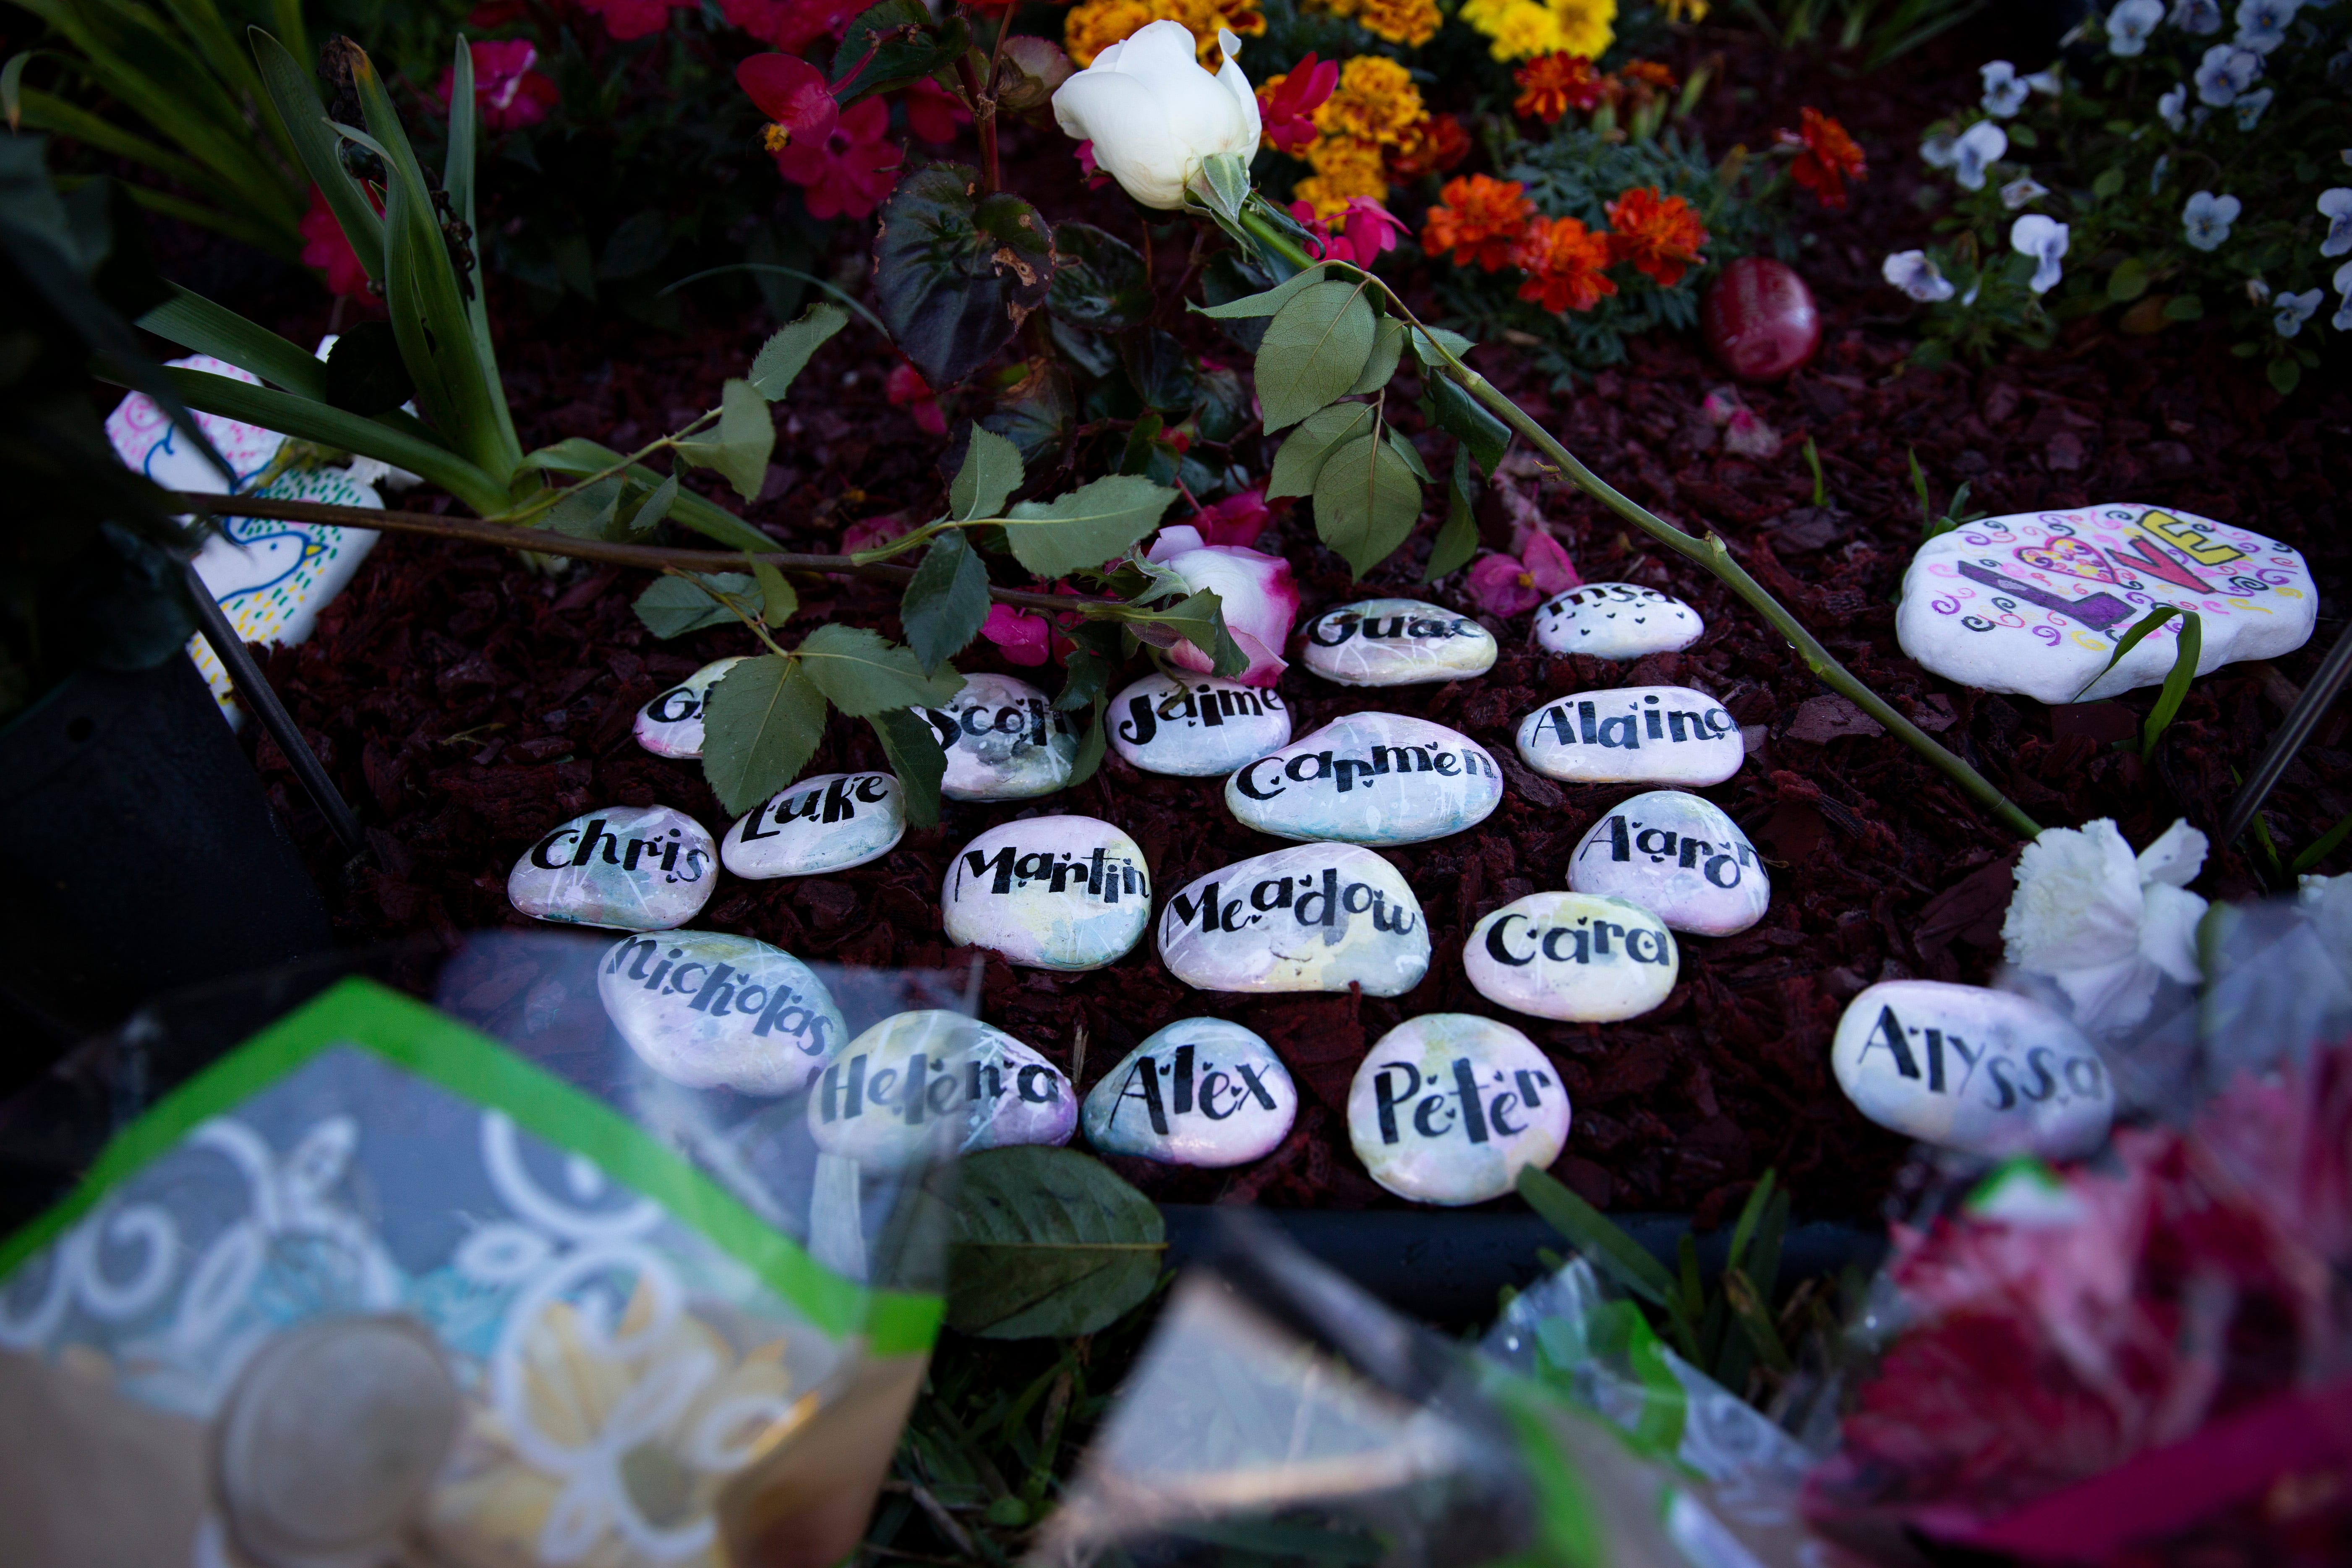 Parkland remembers 17 lives lost one year ago, hopes for a safer future